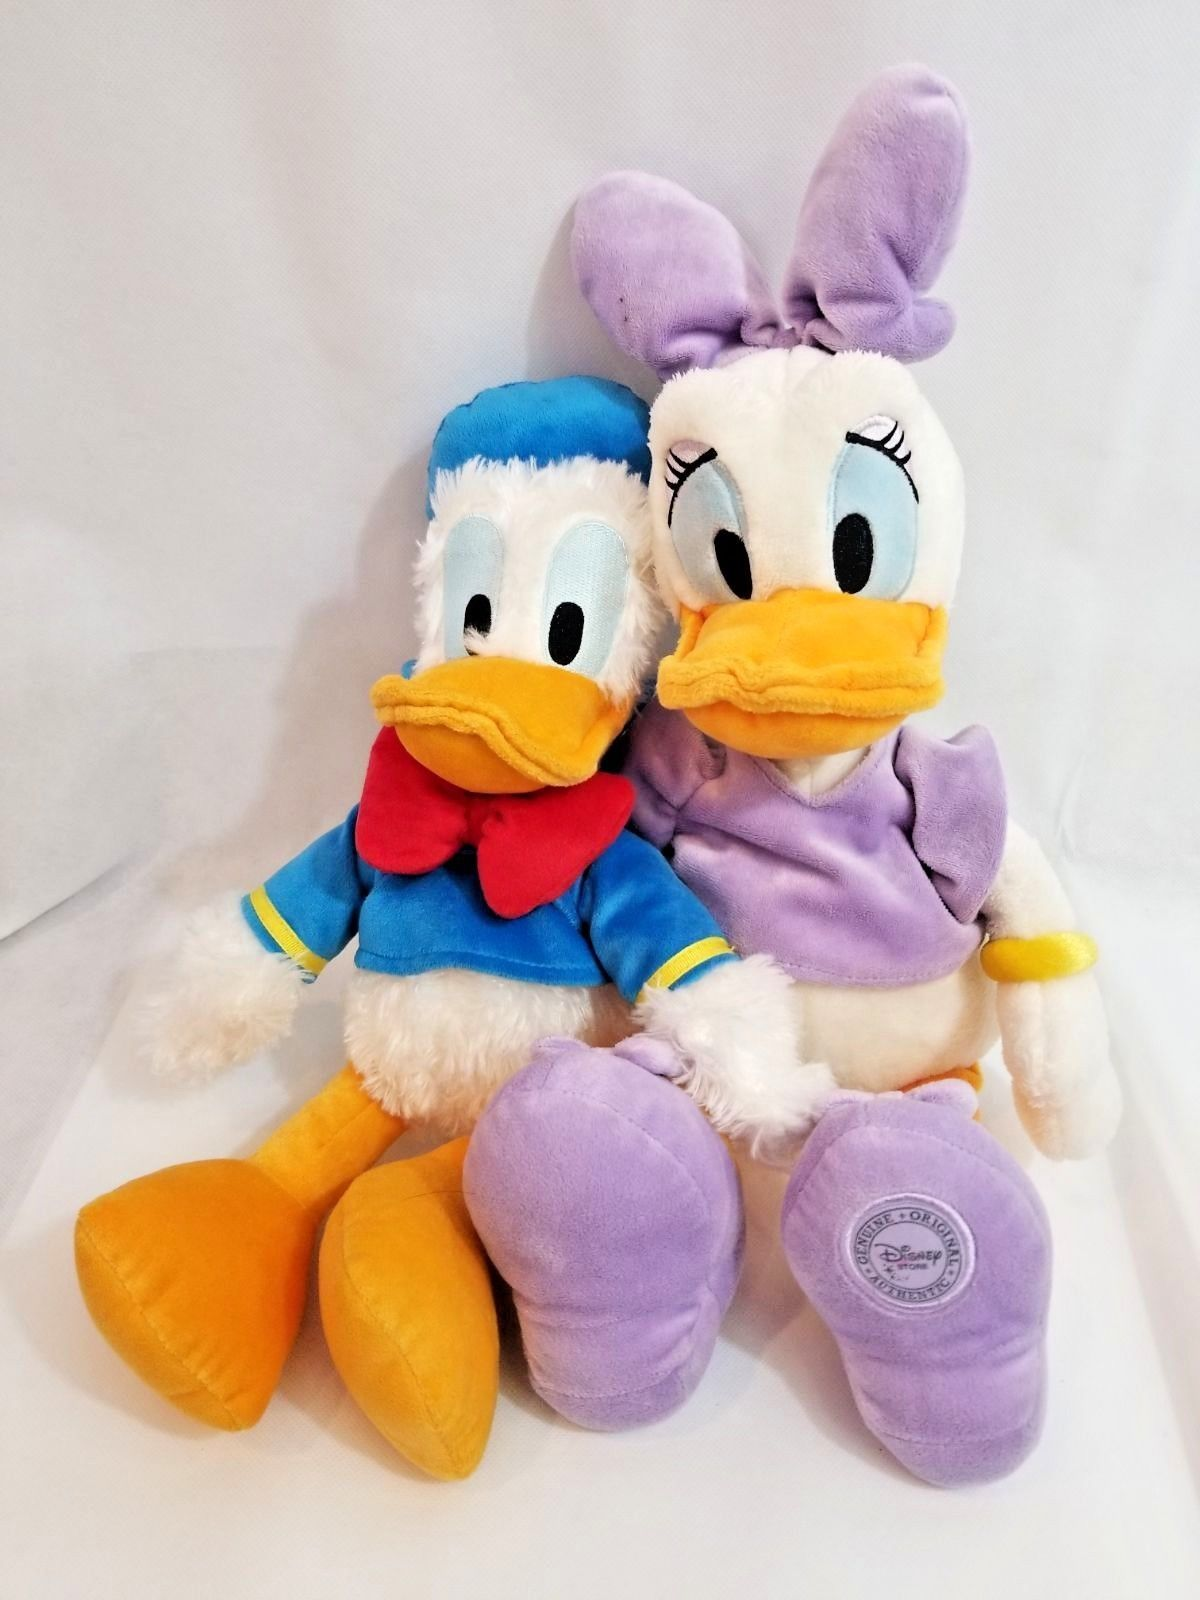 The Disney Store And Parks large Plush Donald Duck and Genuine Authentic Daisy